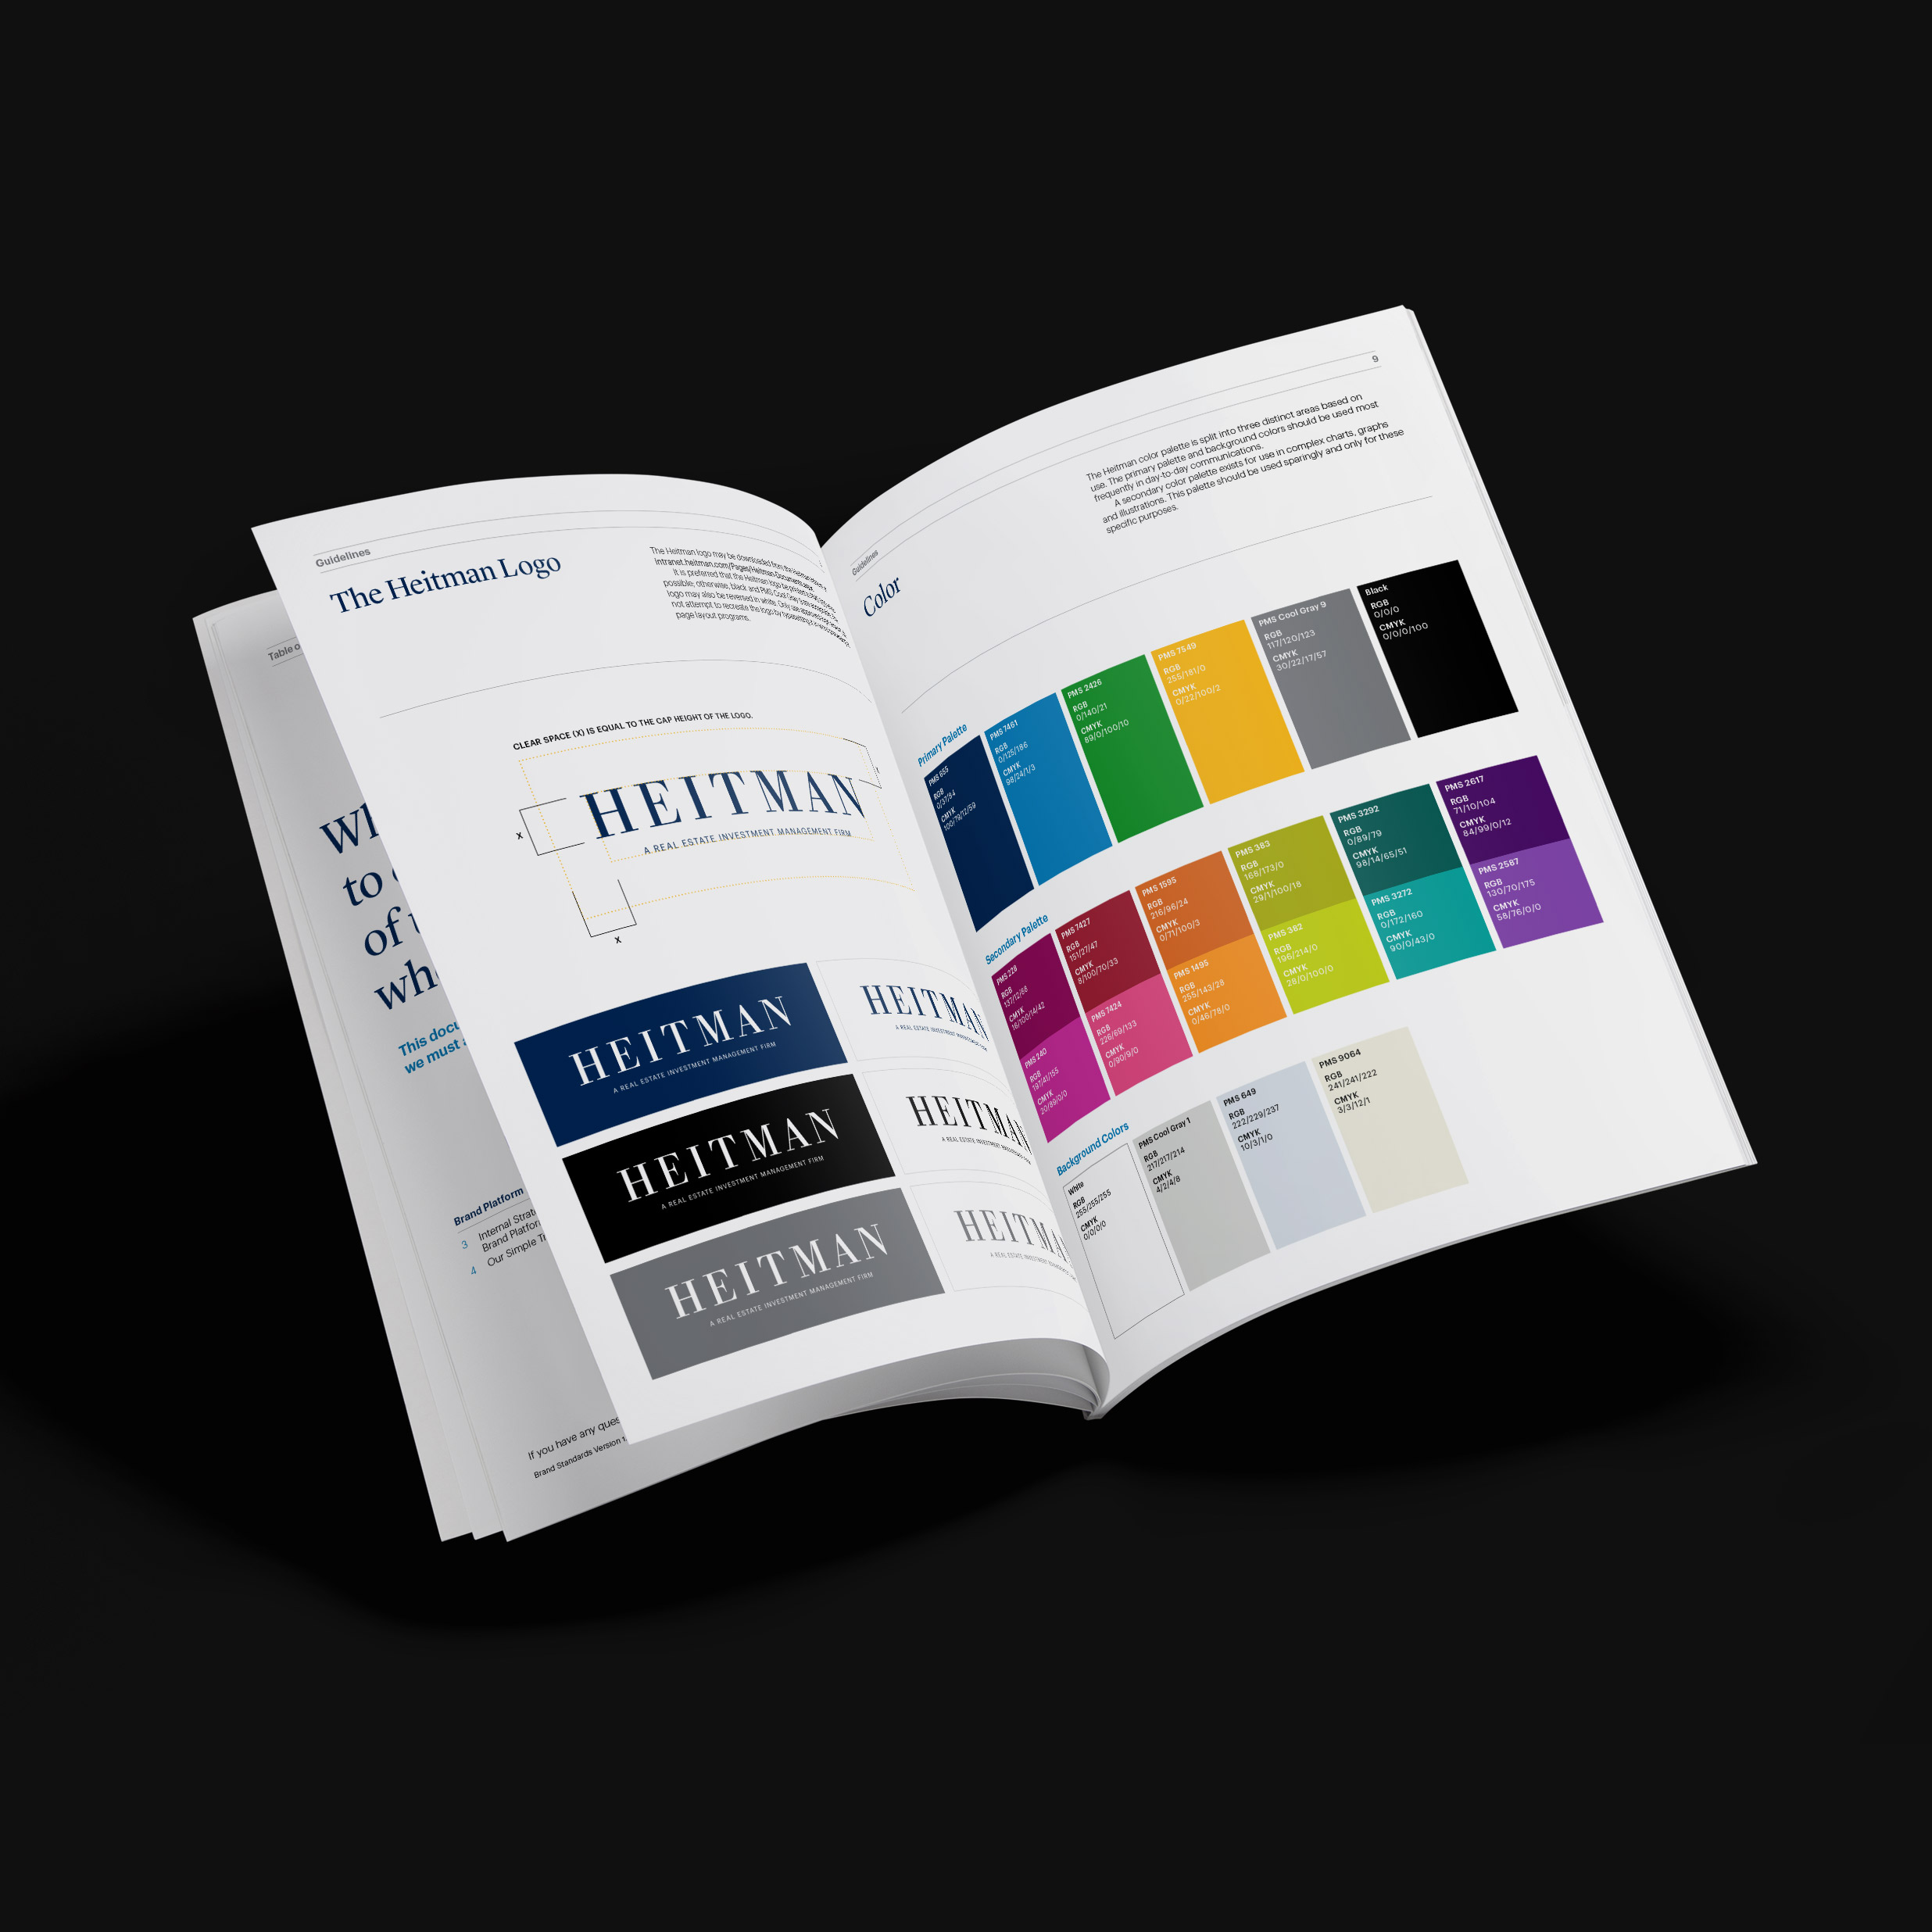 Heitman Brand Book